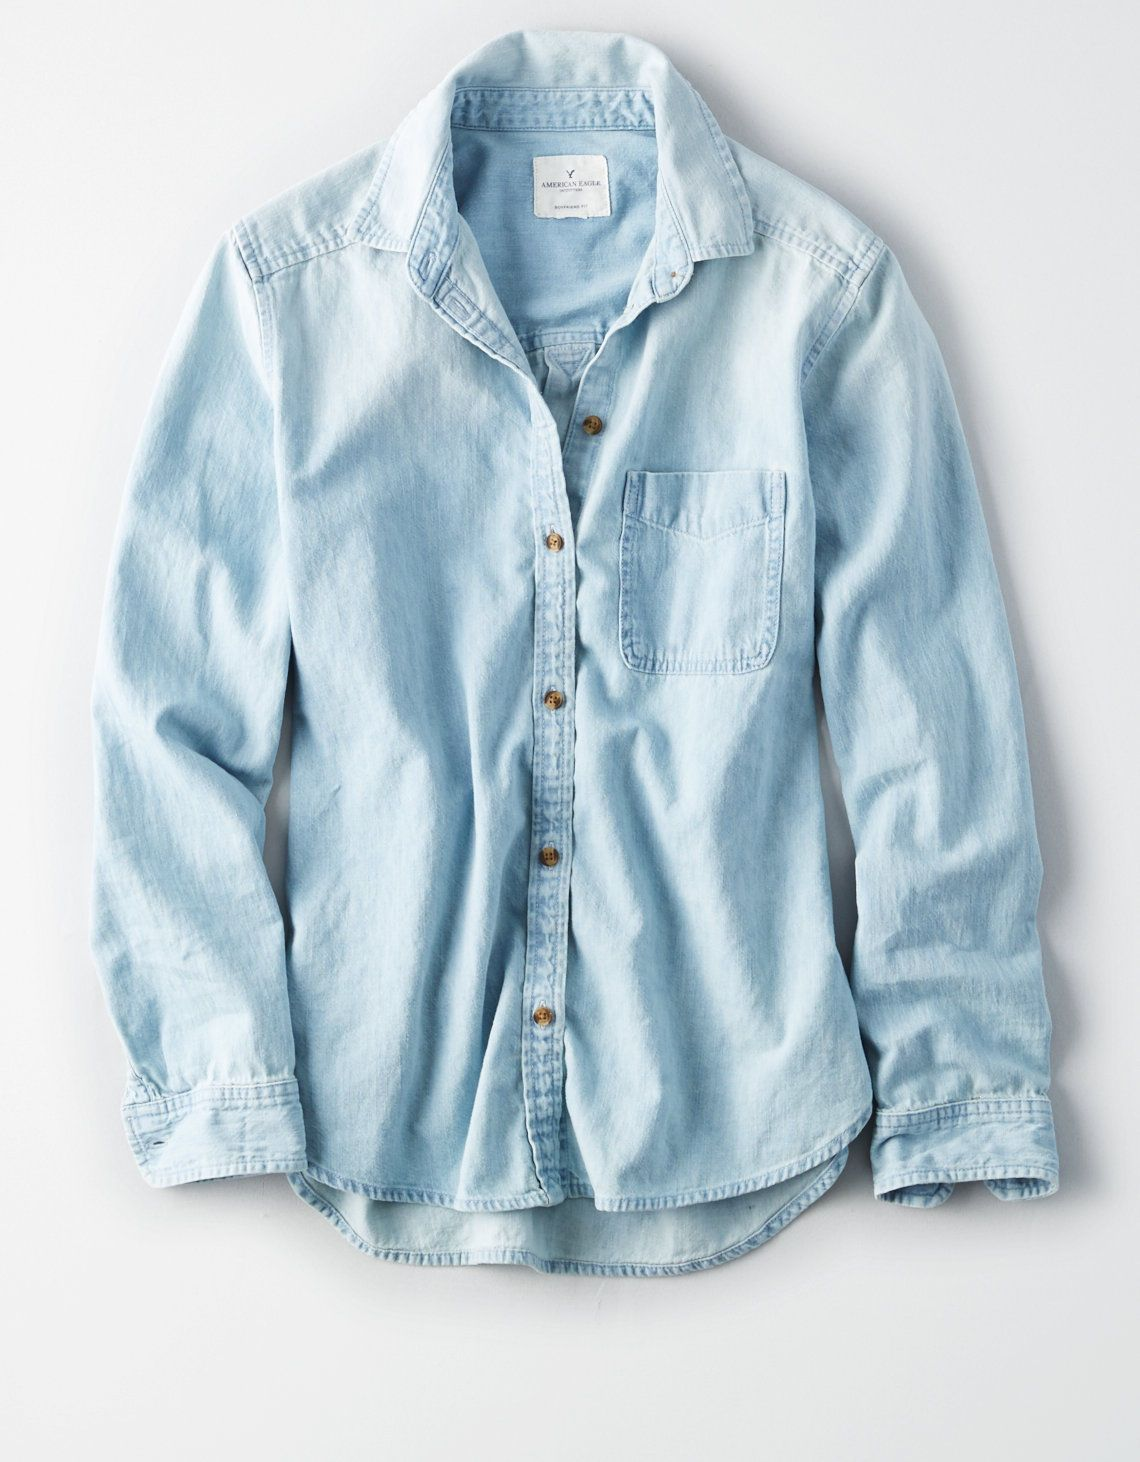 6ff56e6006 21.85 | New American Eagle Women's Classic Denim Button Down Shirt Size  Large or X-Large ❤ #american #eagle #womens #classic #denim #button #shirt  #large ...